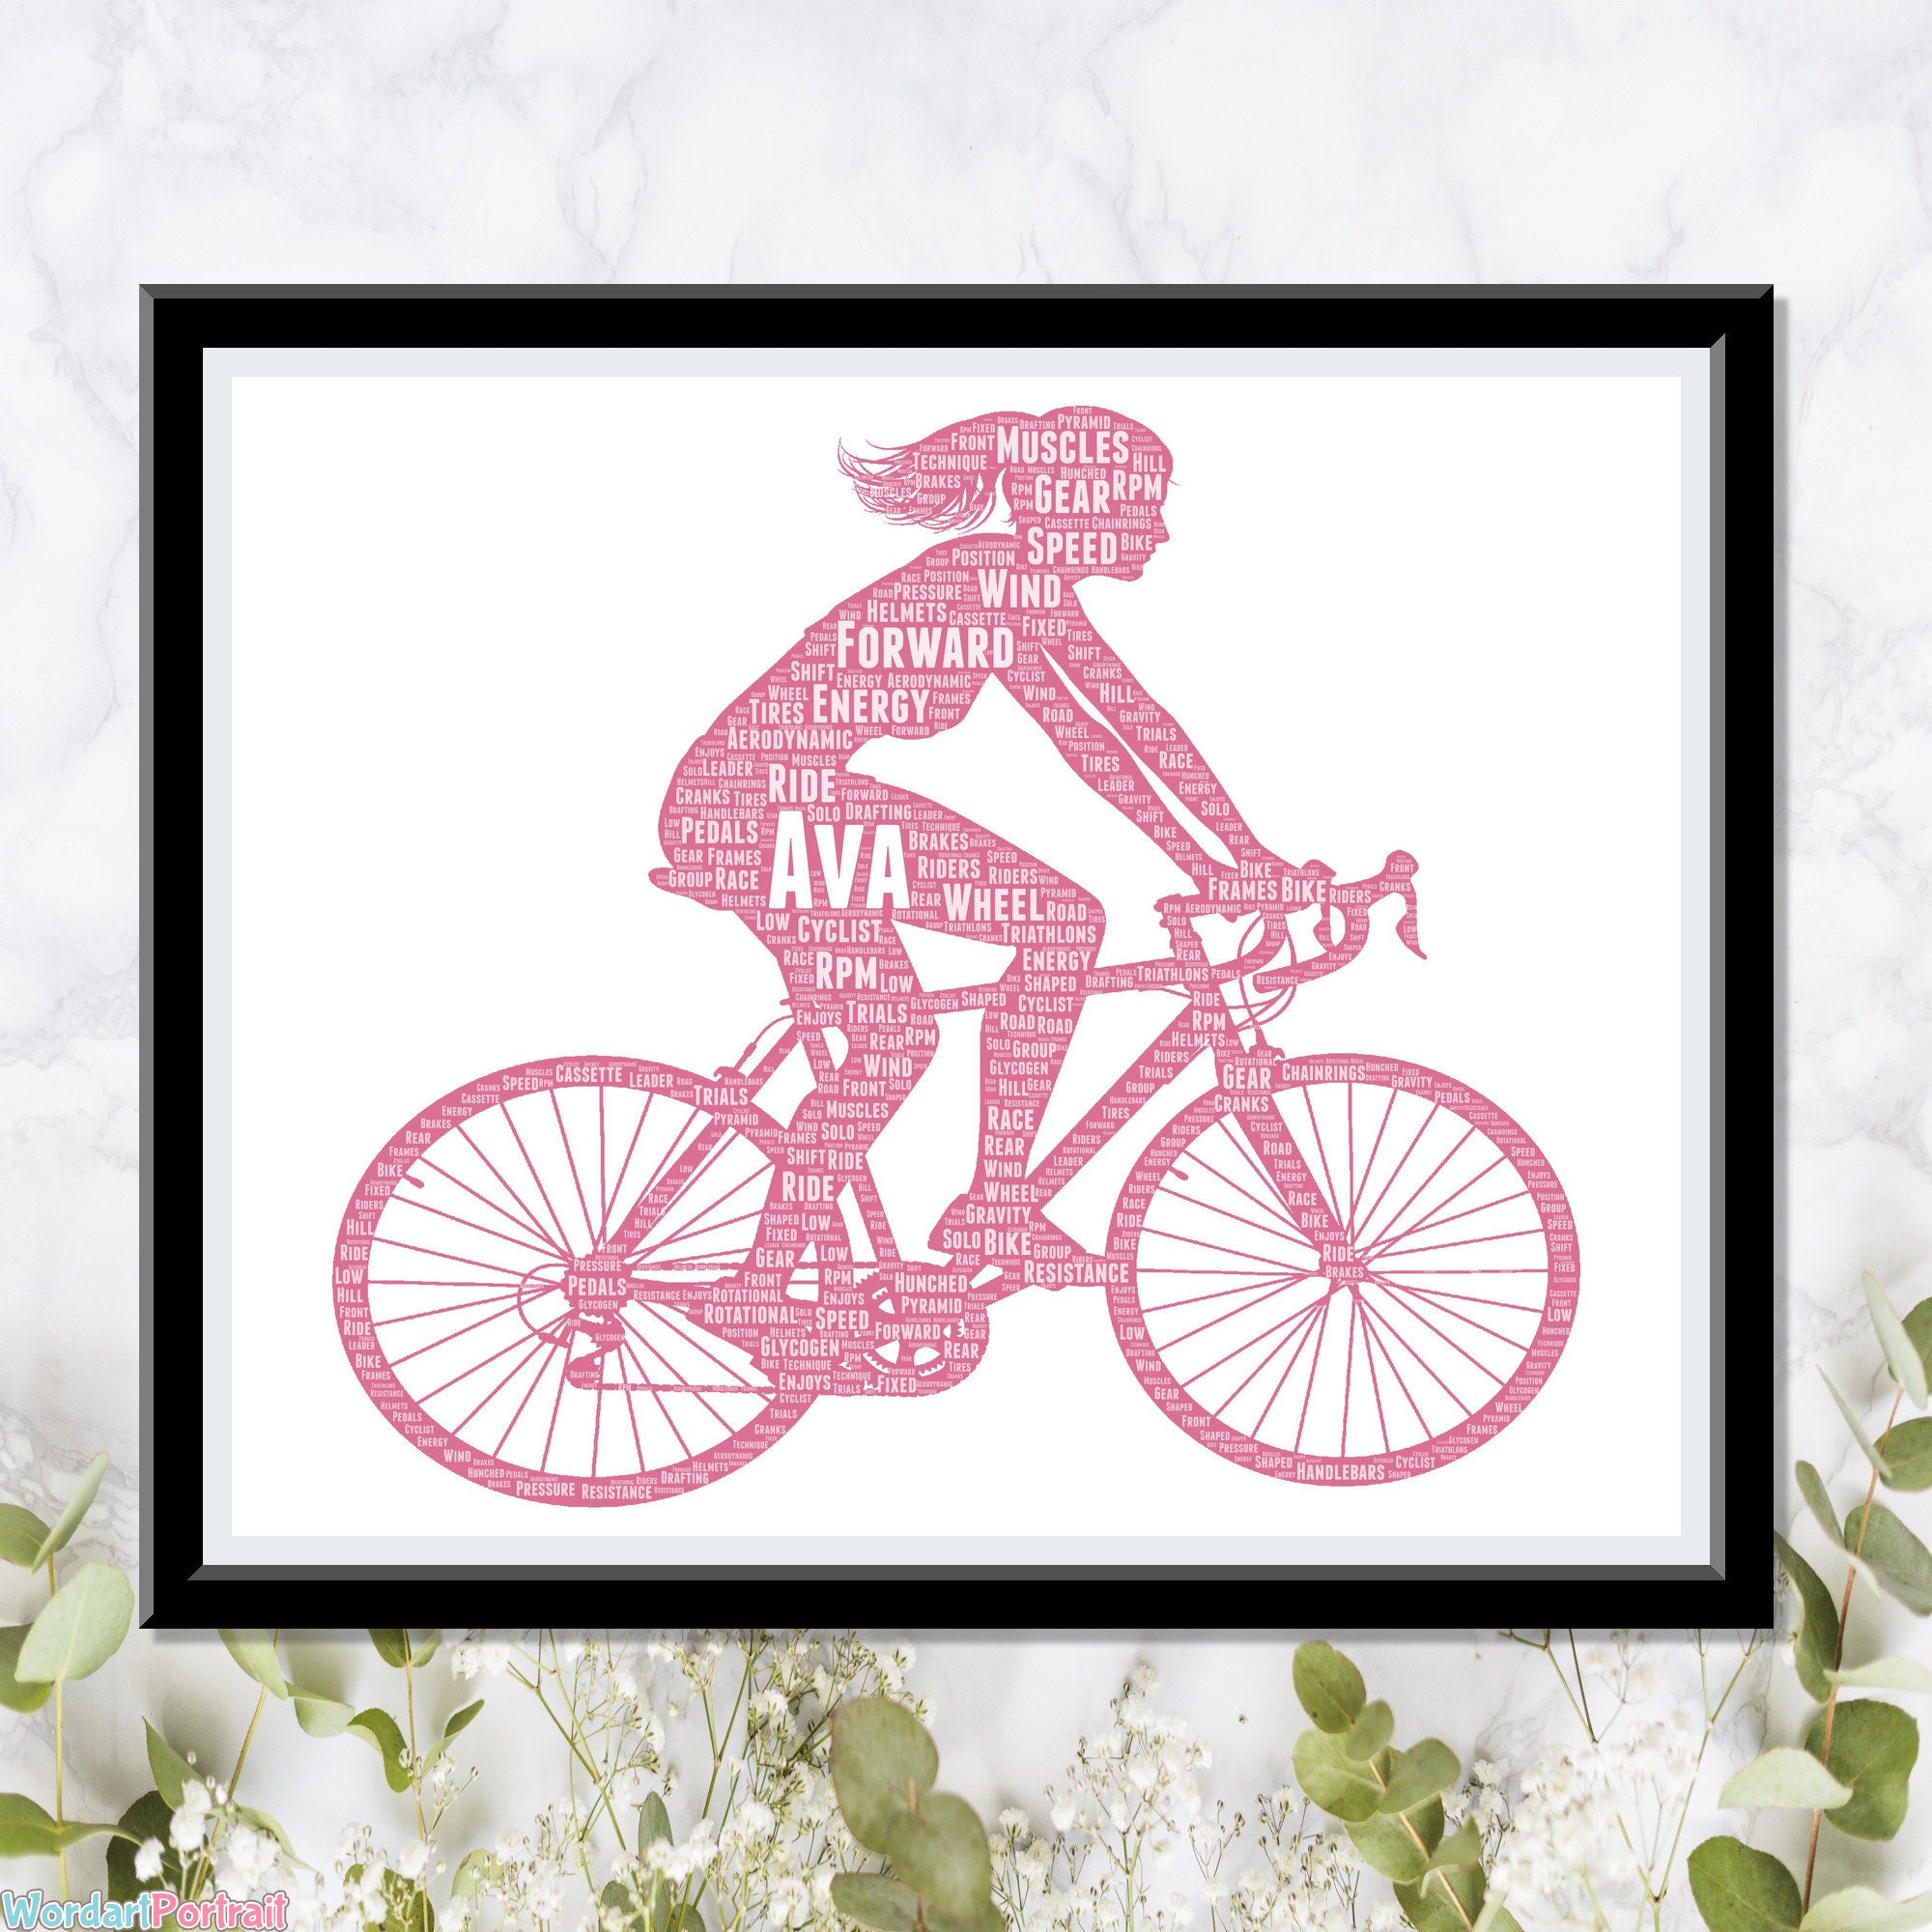 Personalized Gift for Cyclists - Female Cycle Racing - Bicycle Gifts - For Daughter Mom Sister Girlfriend For Her Gifts Wordle Word Cloud